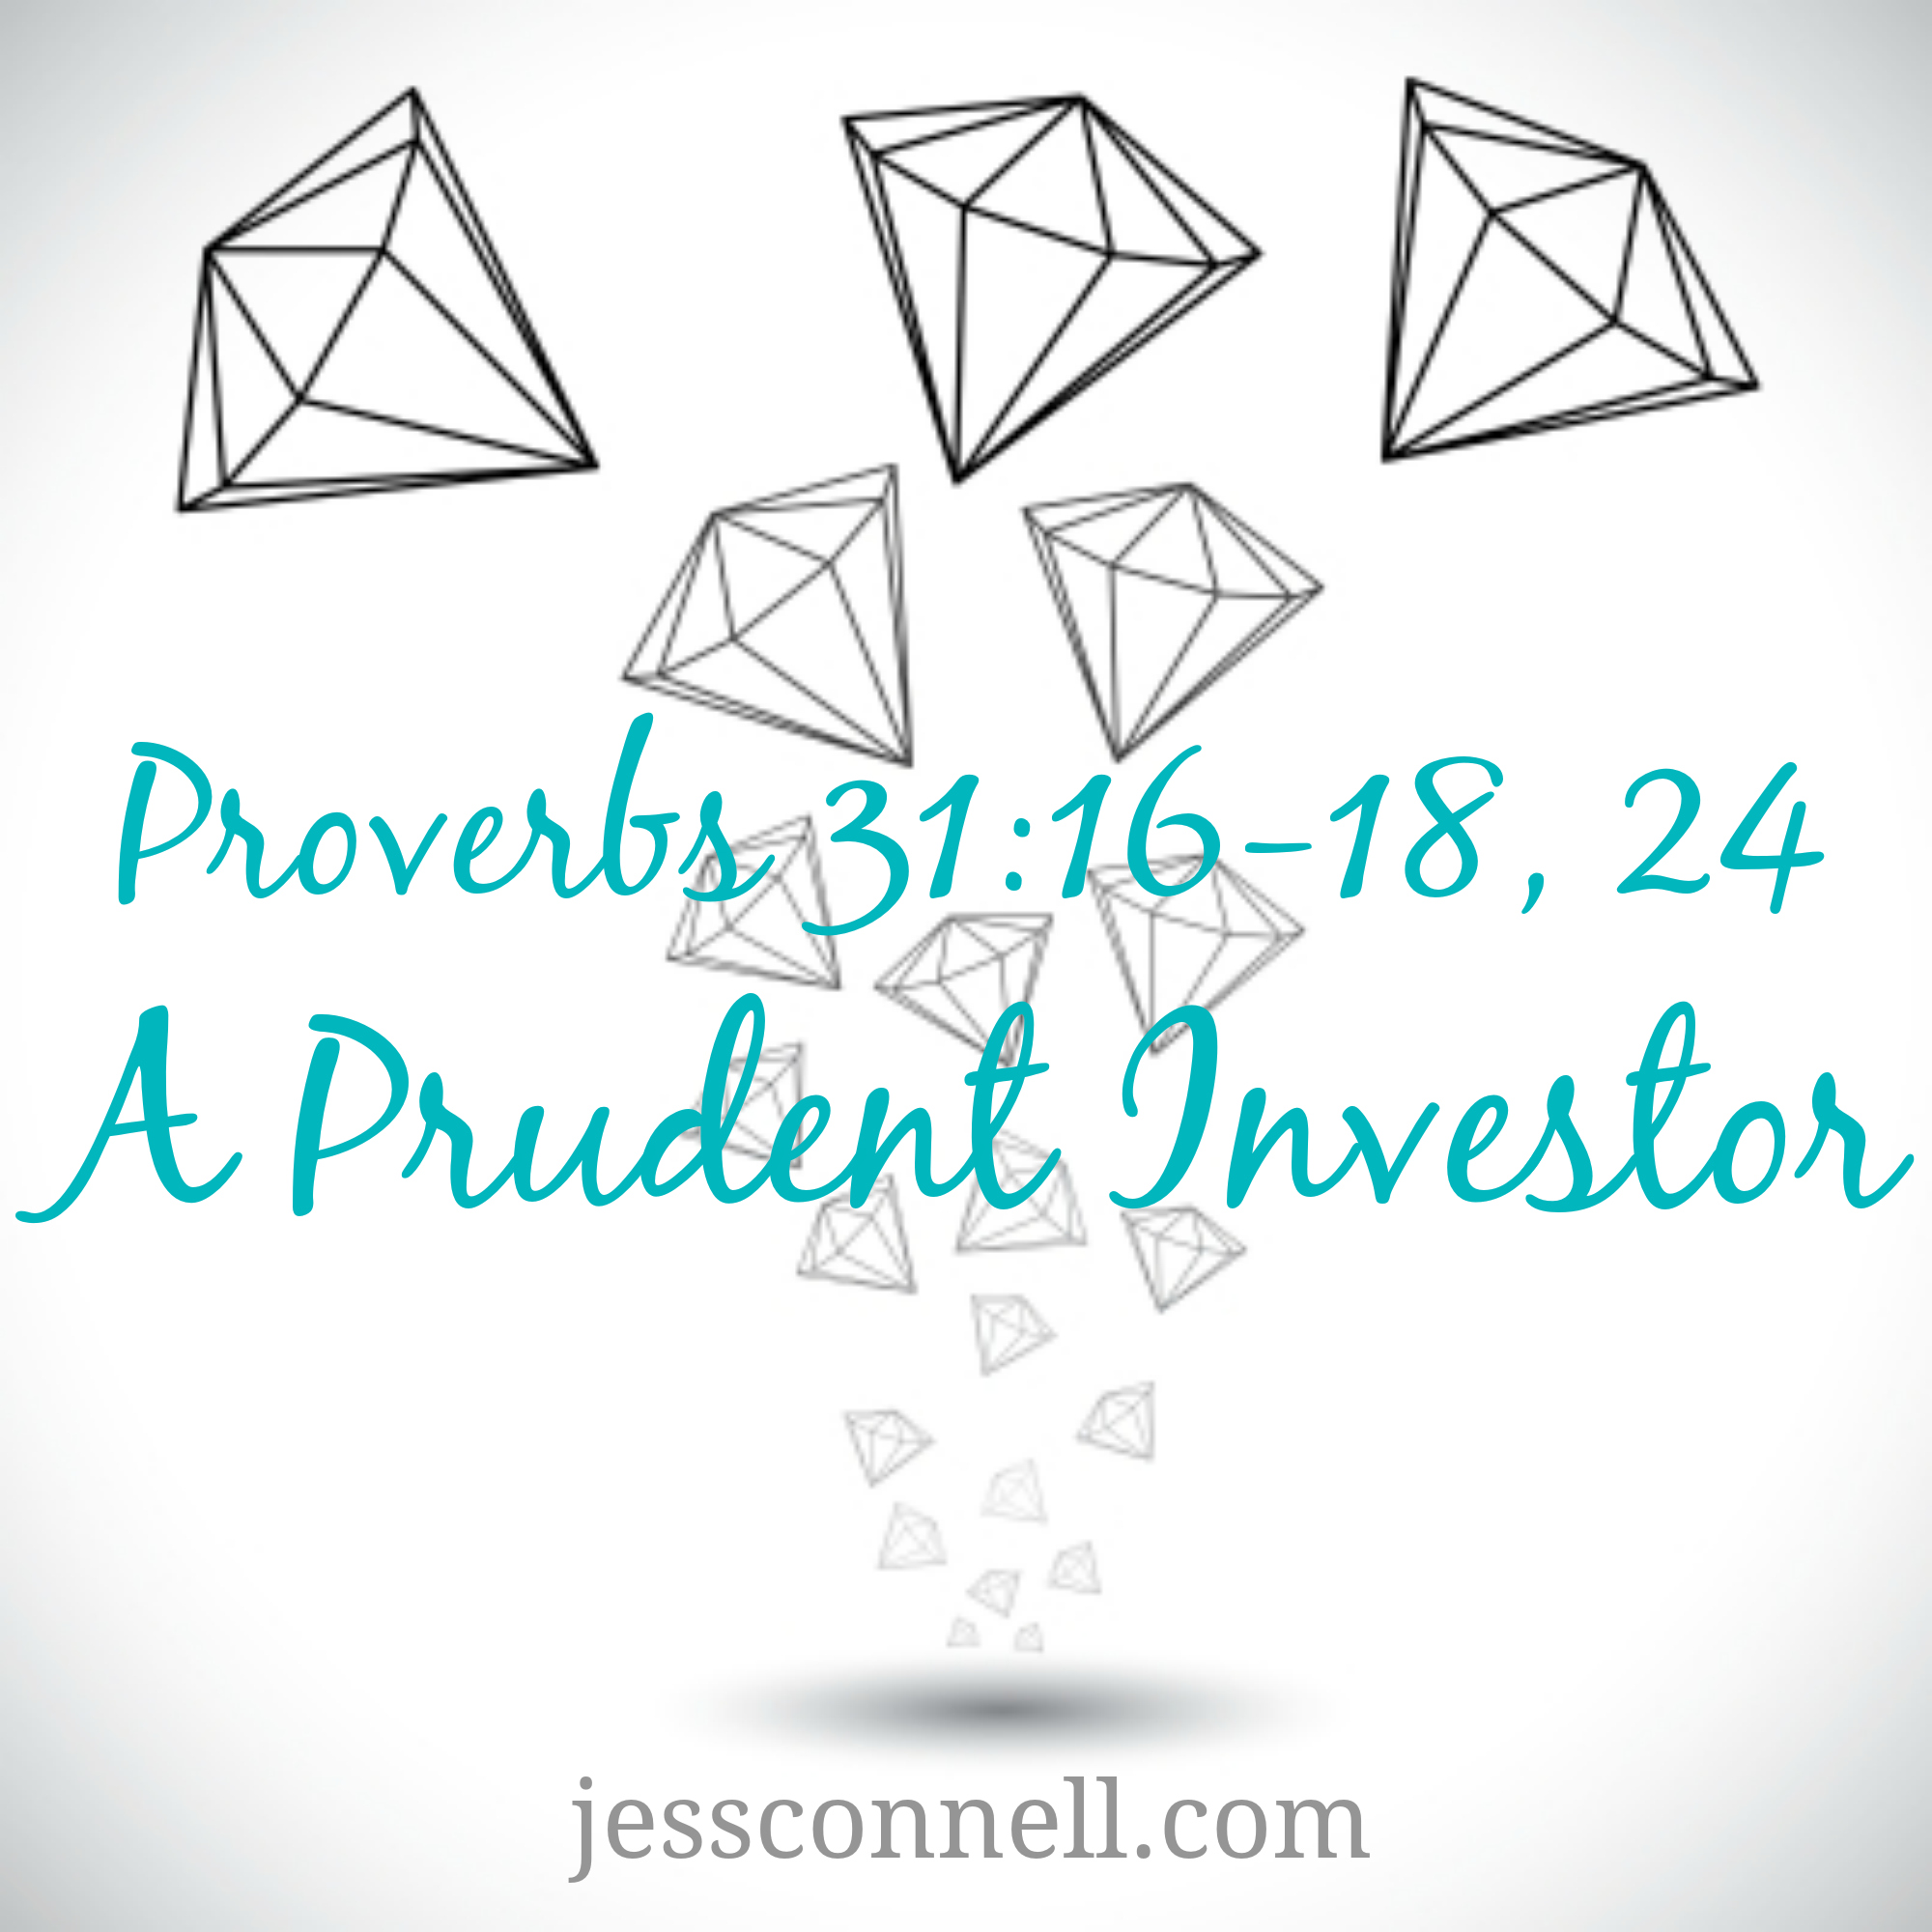 A Prudent Investor (Proverbs 31:16-18, 24) // jessconnell.com